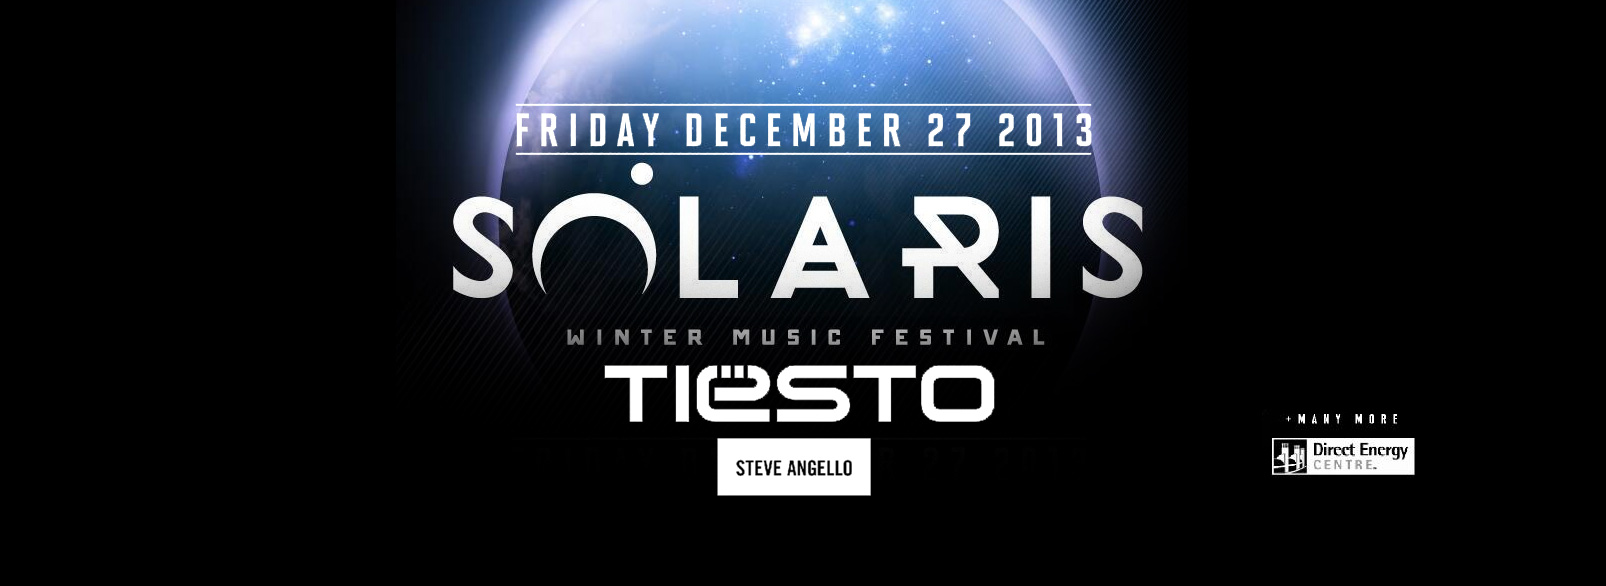 Solaris Winter Music Festival